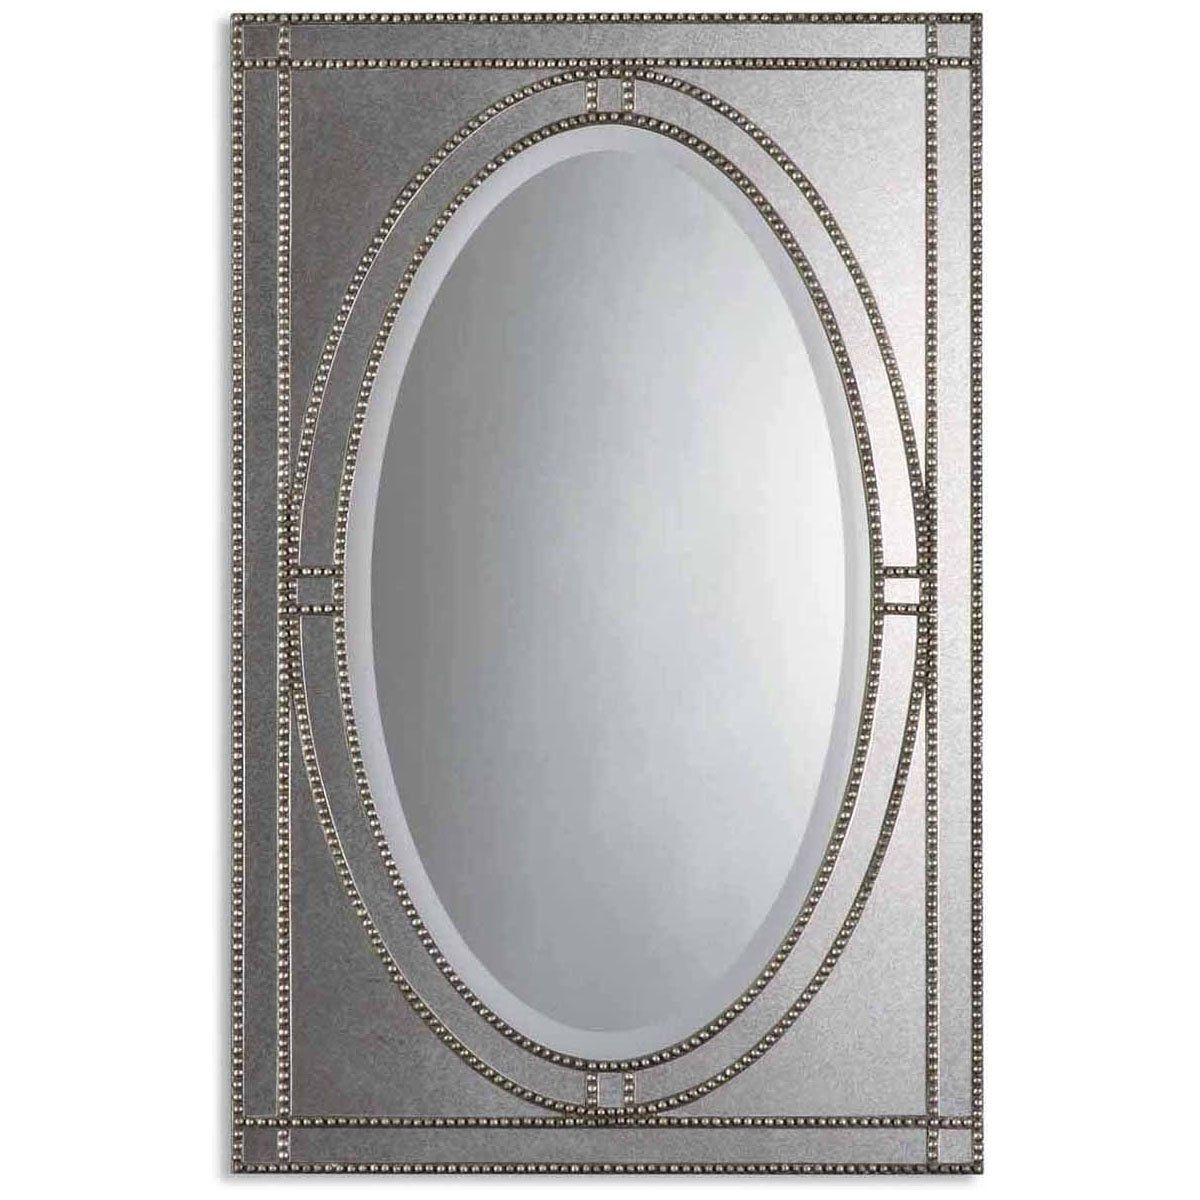 Amazon uttermost 08055 b earnestine mirror antique silver amazon uttermost 08055 b earnestine mirror antique silver home kitchen amipublicfo Gallery